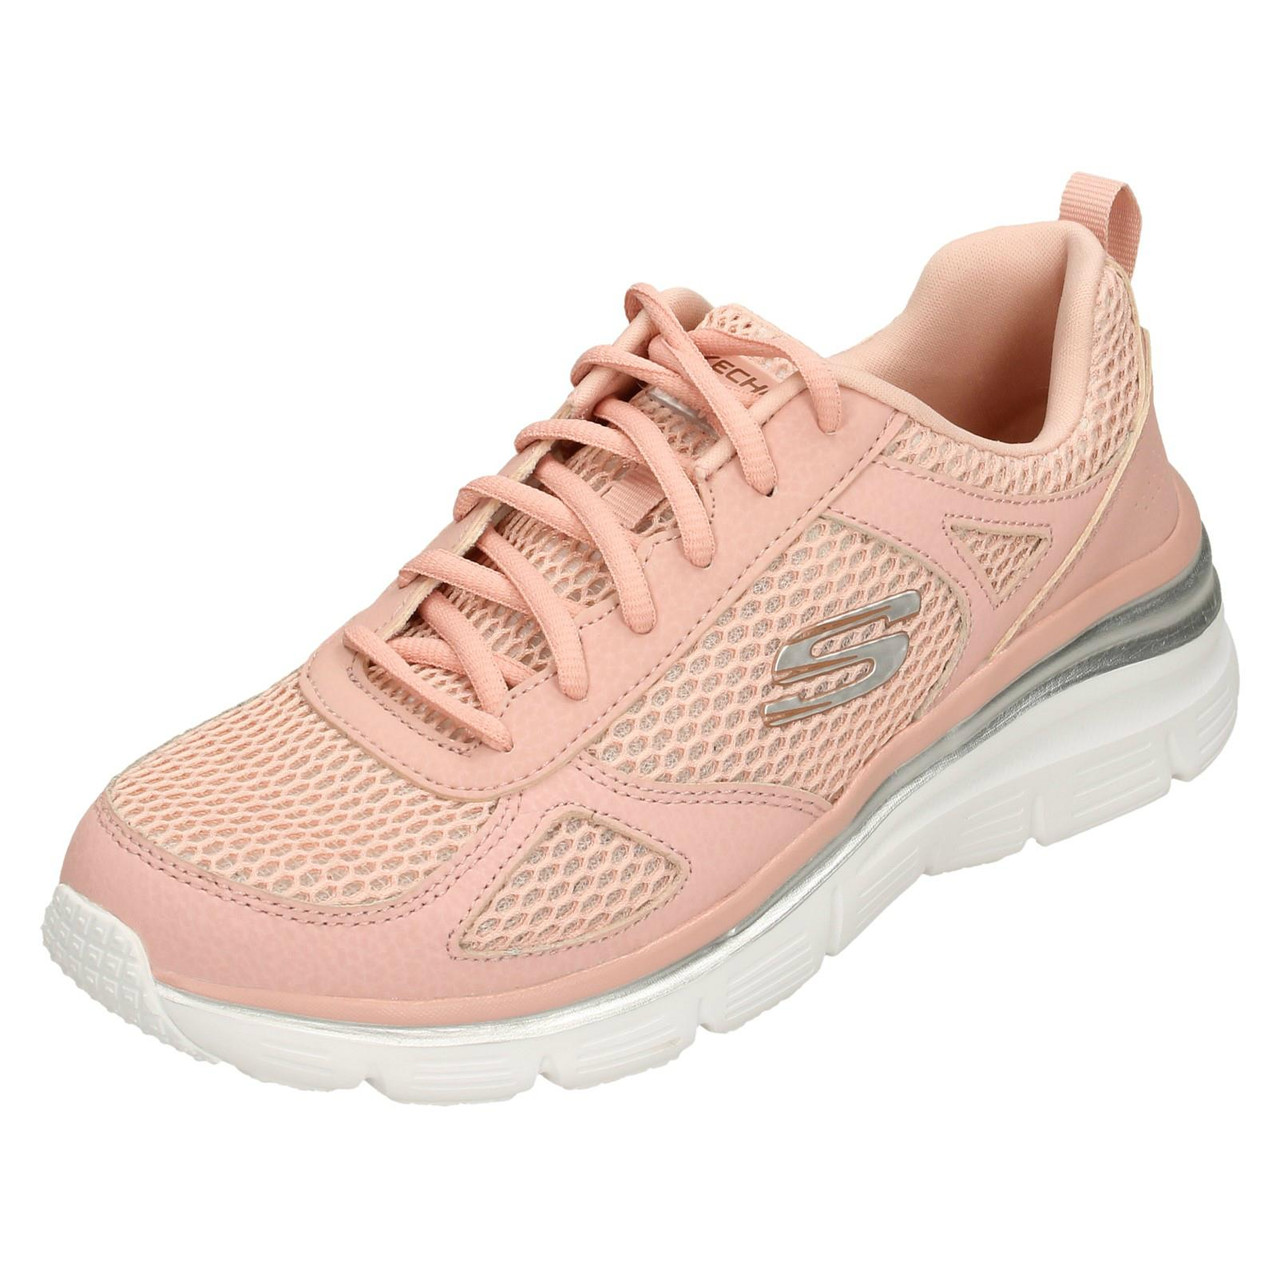 Ladies Skechers Perfect Mate Trainers With Memory Foam